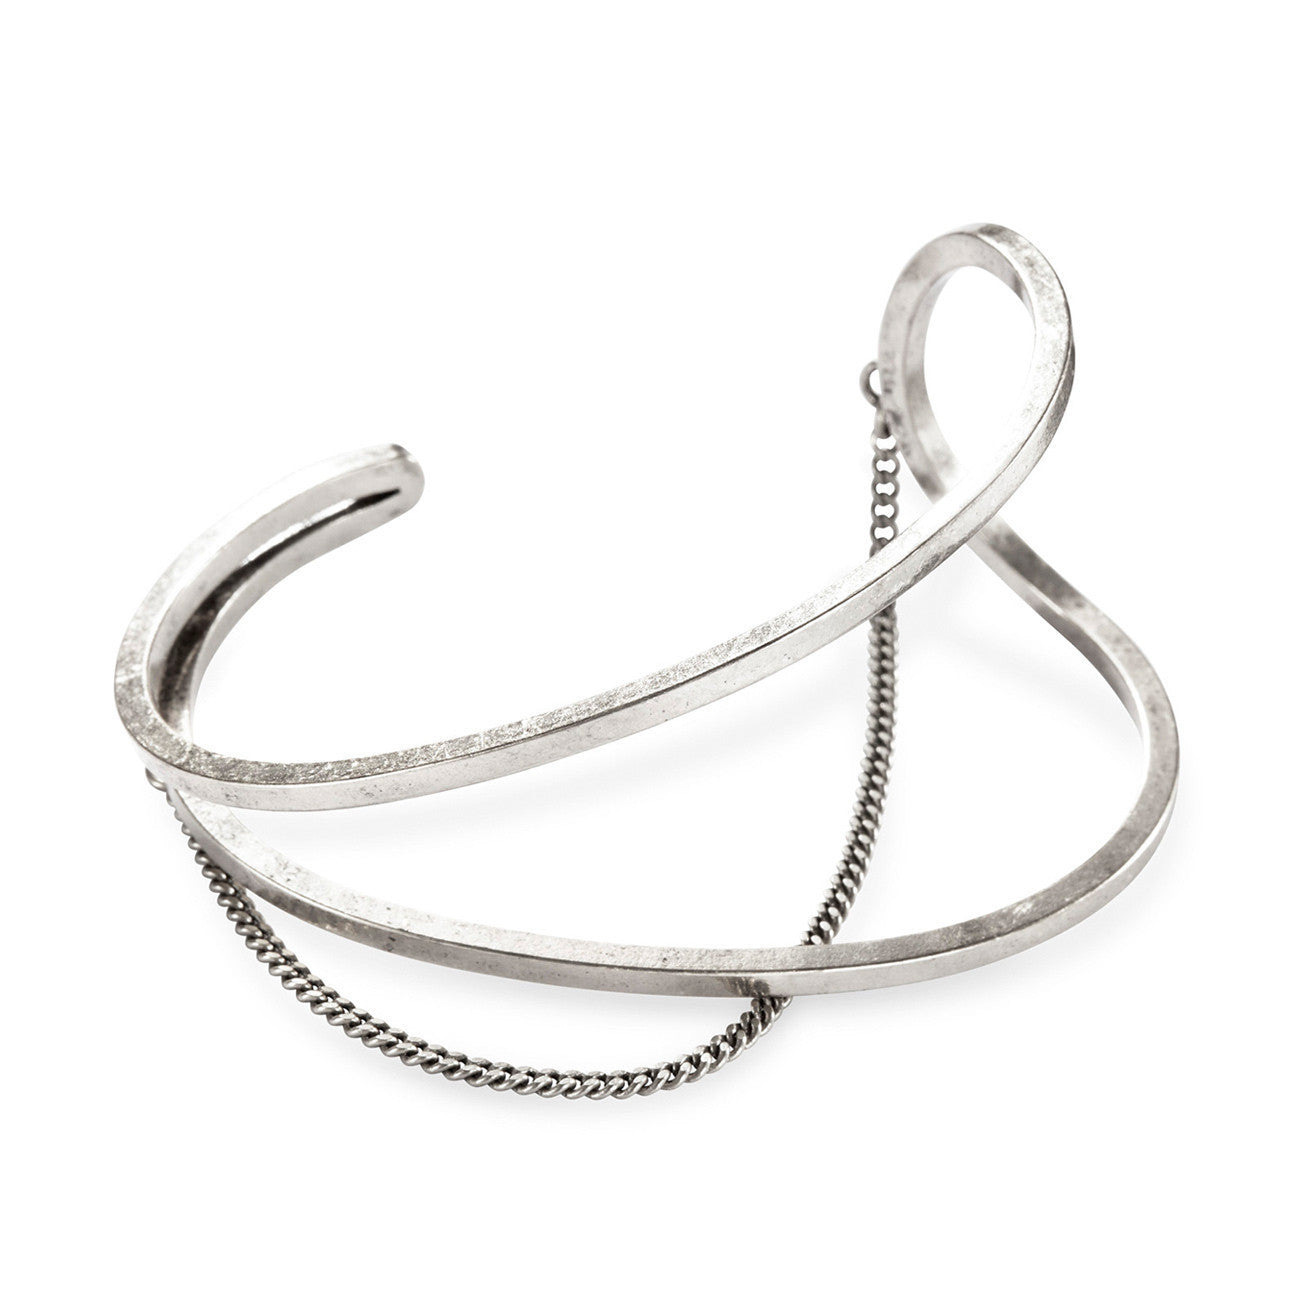 River Cuff in Silver Ox by Jenny Bird